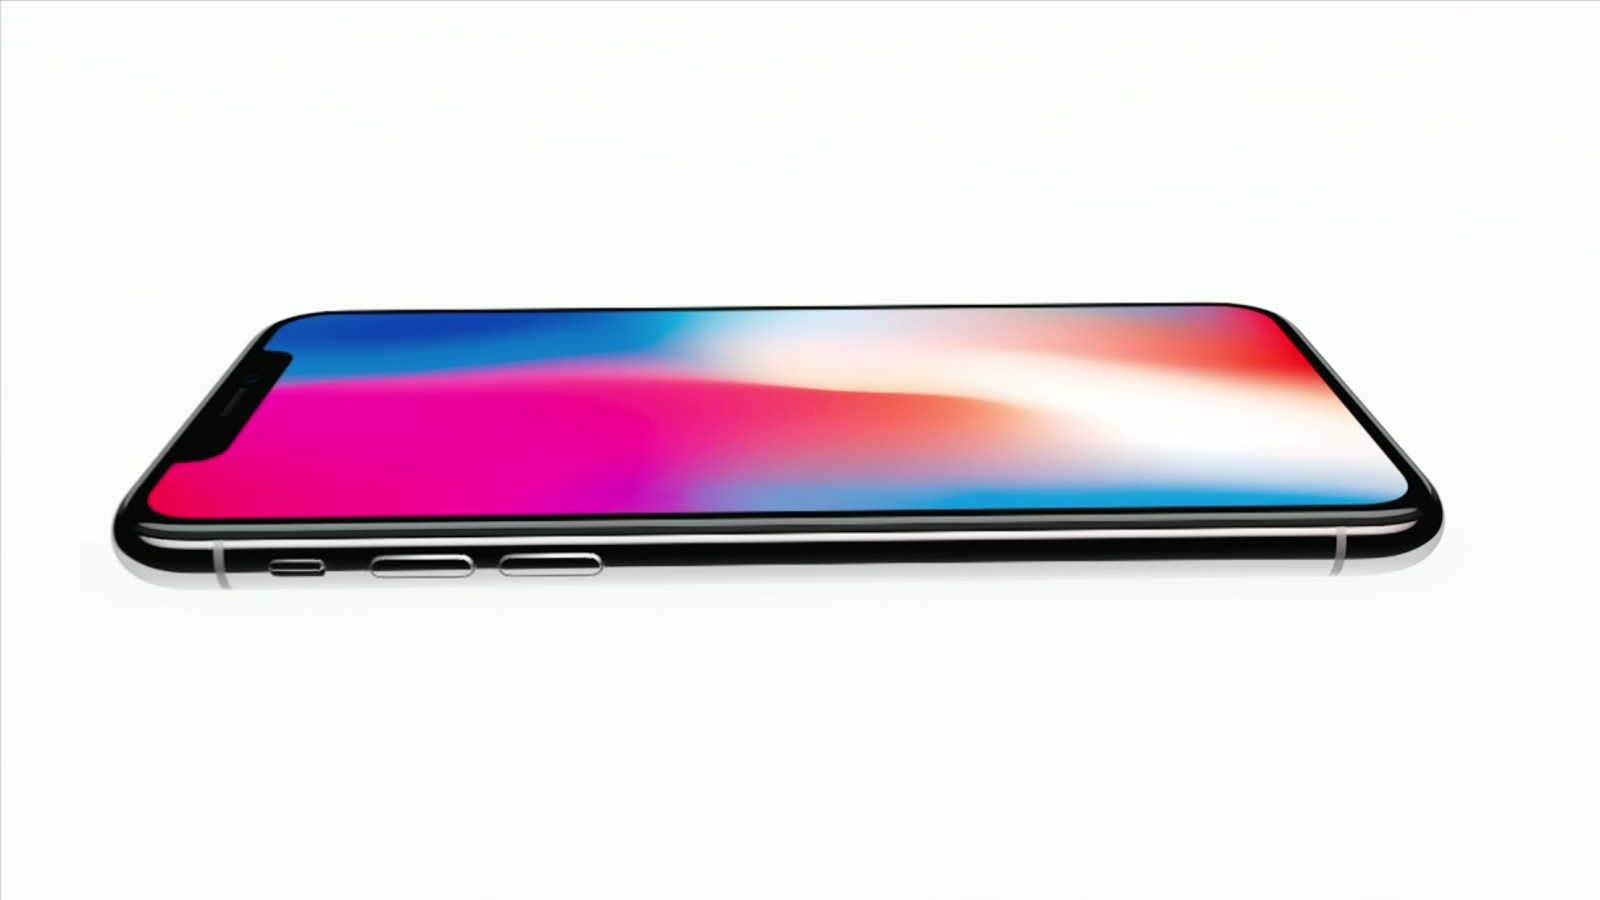 IMG_4141 Check out the Stunning iPhone X (iPhone 10) images Apple